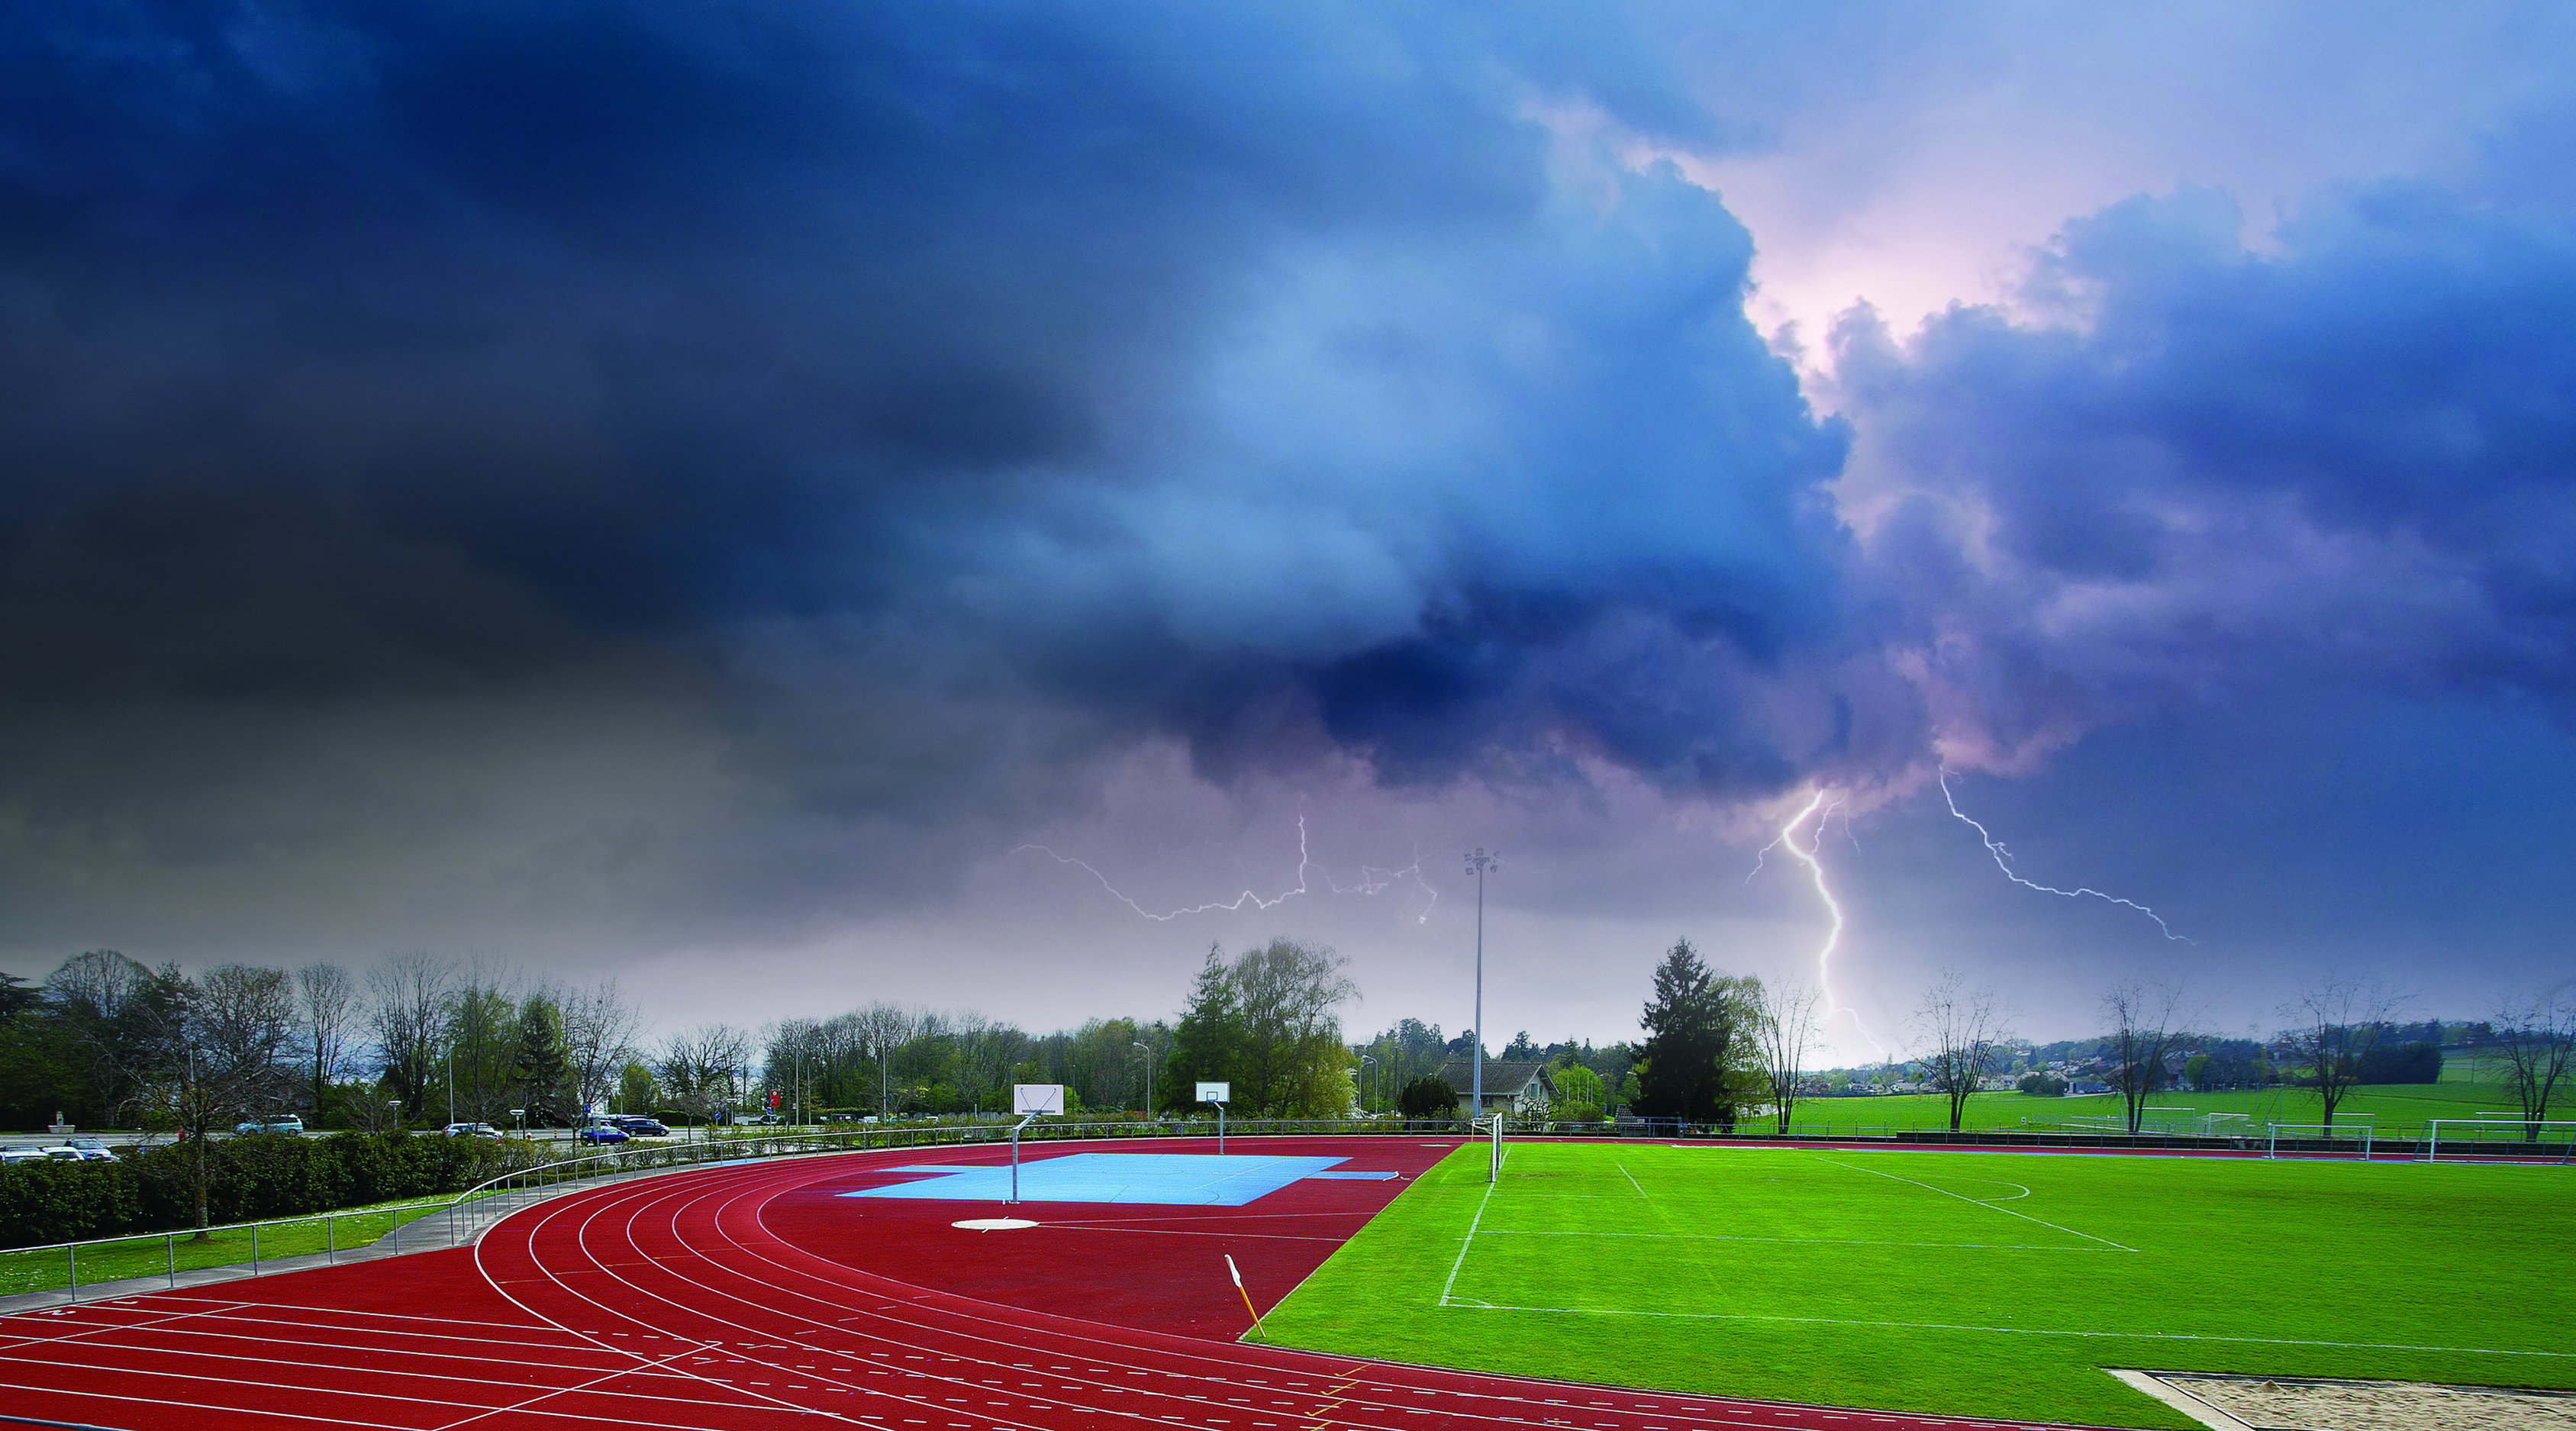 How To Create a Lightning Policy For Sports Leagues